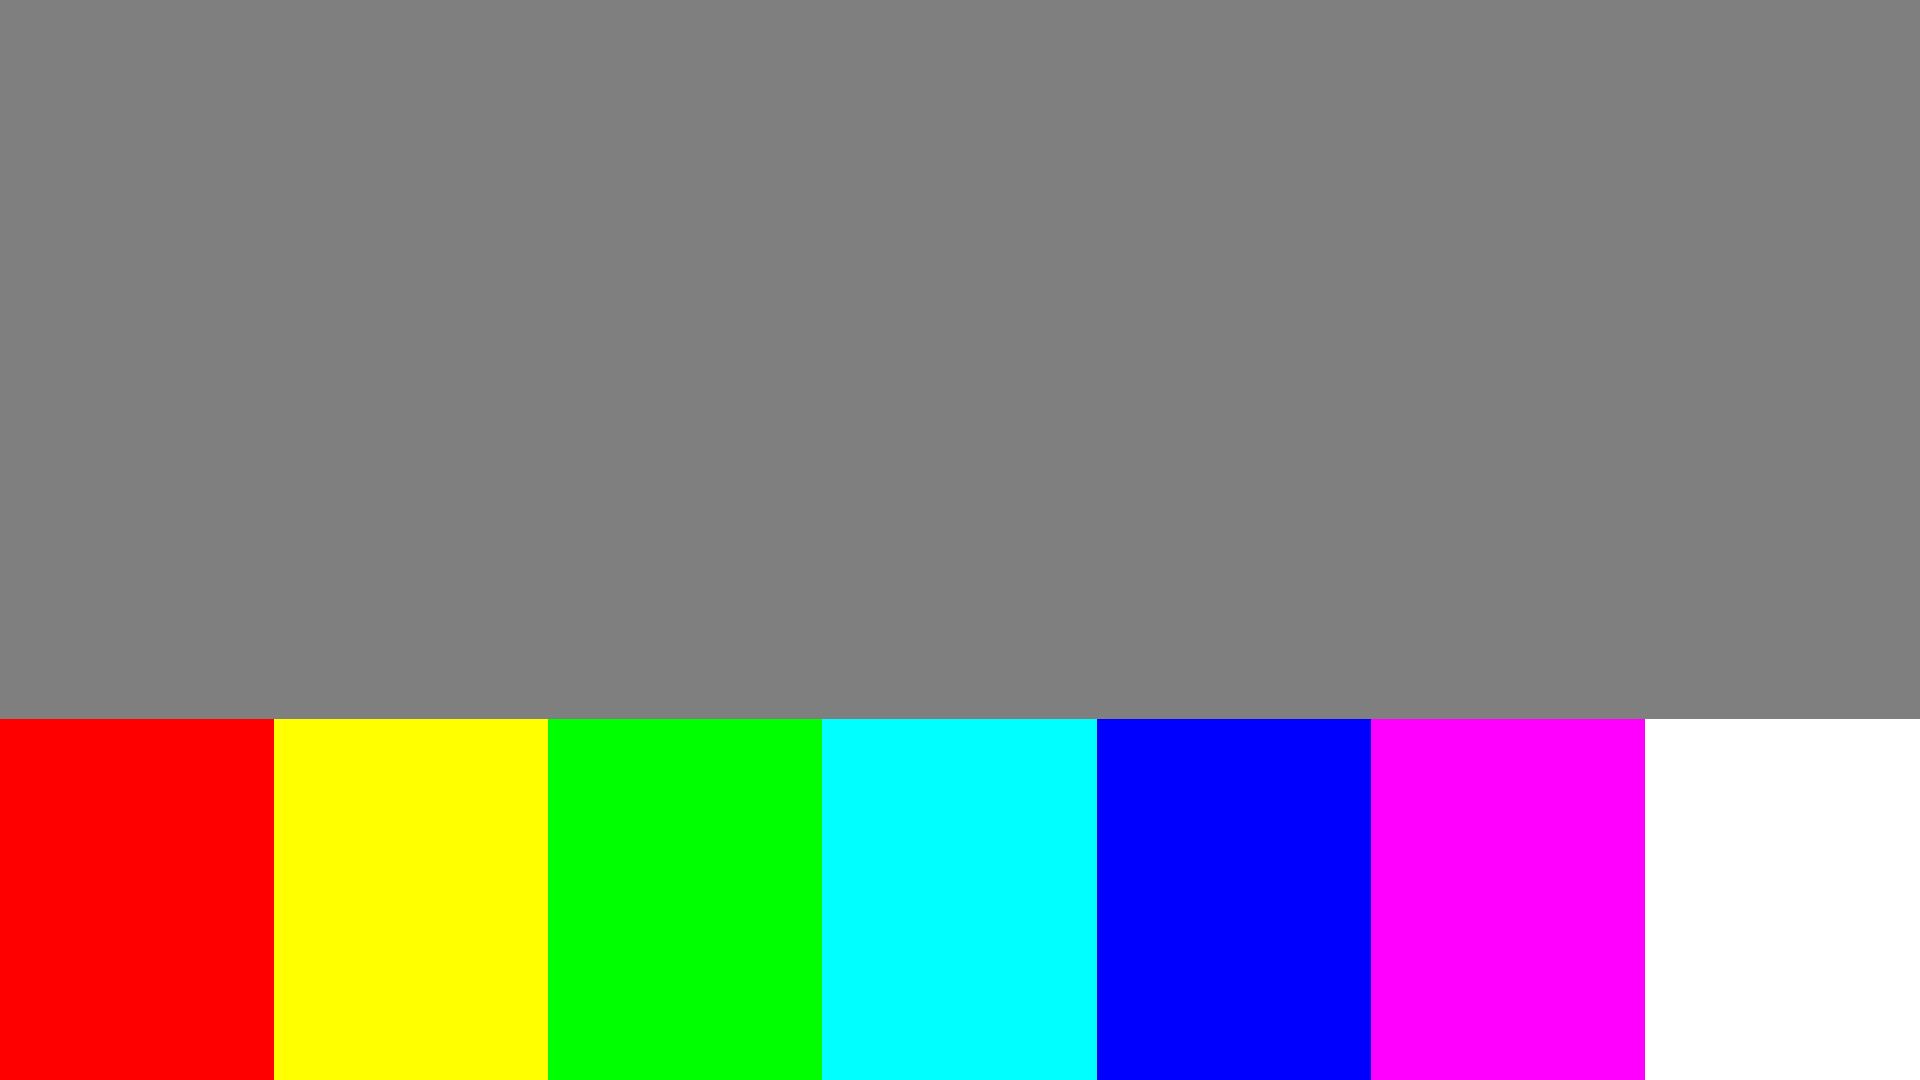 Bottom side color bleed test pattern